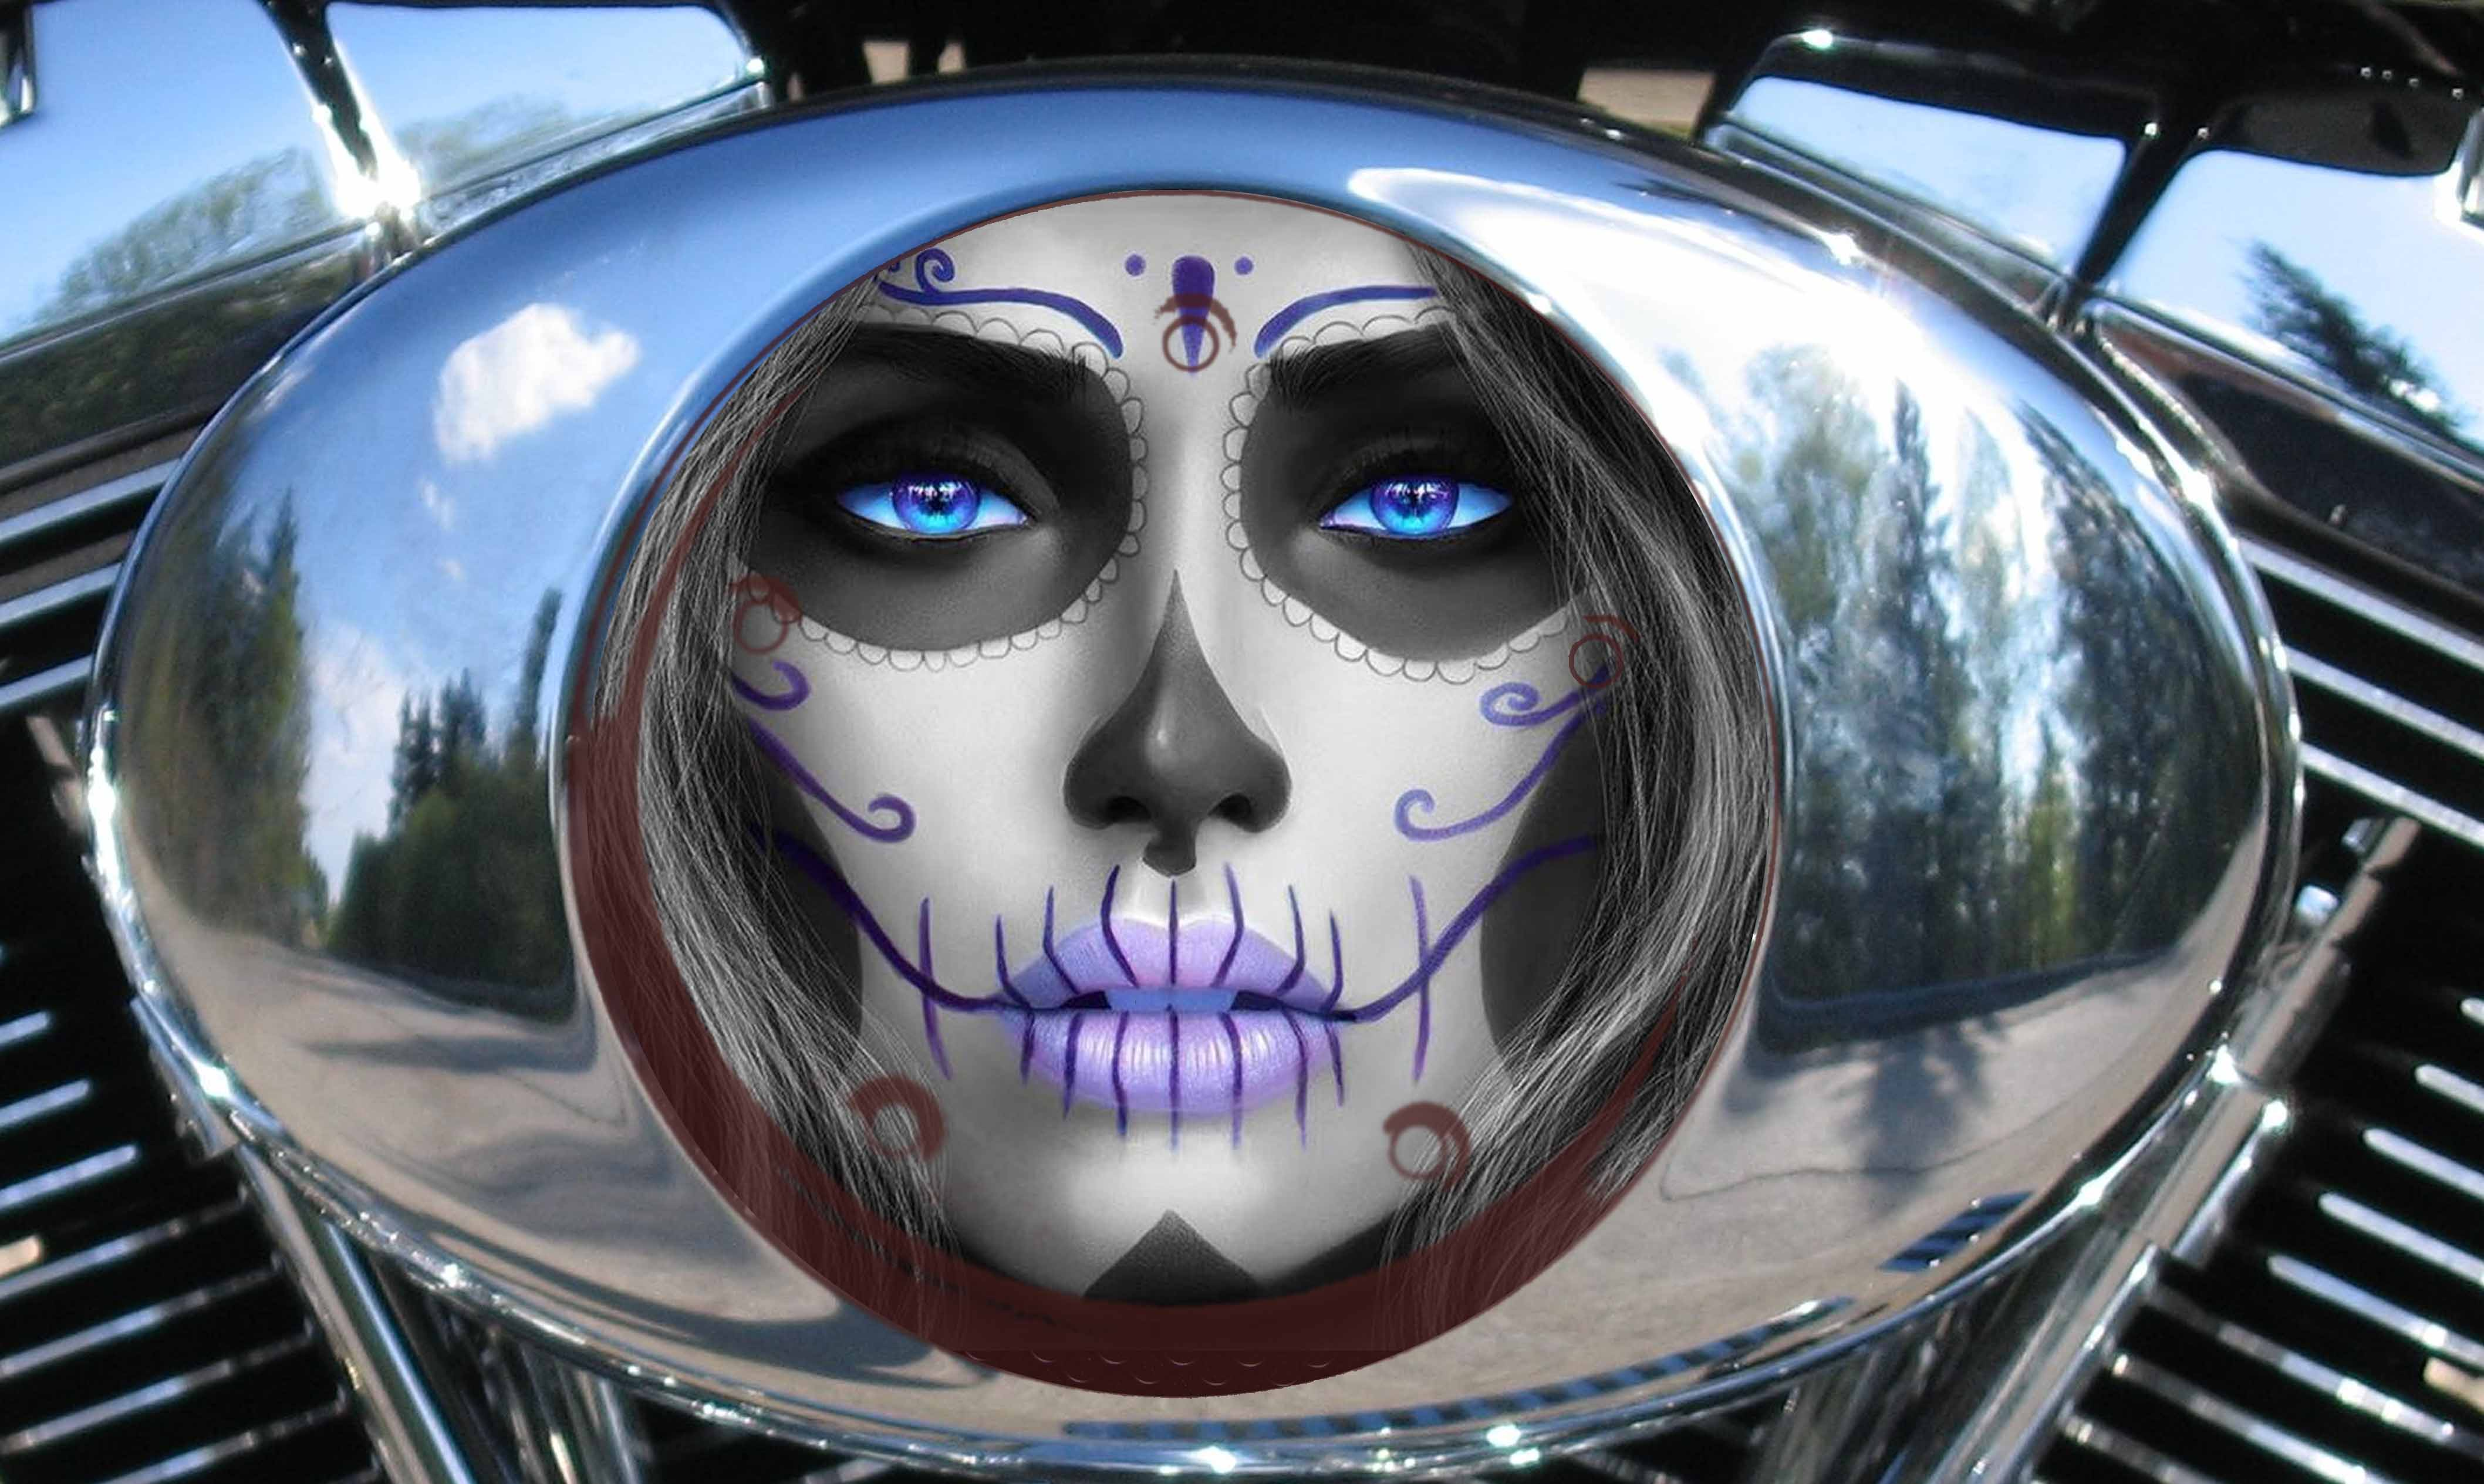 Harley Air Cleaner Cover - Candy/ Sugar skull